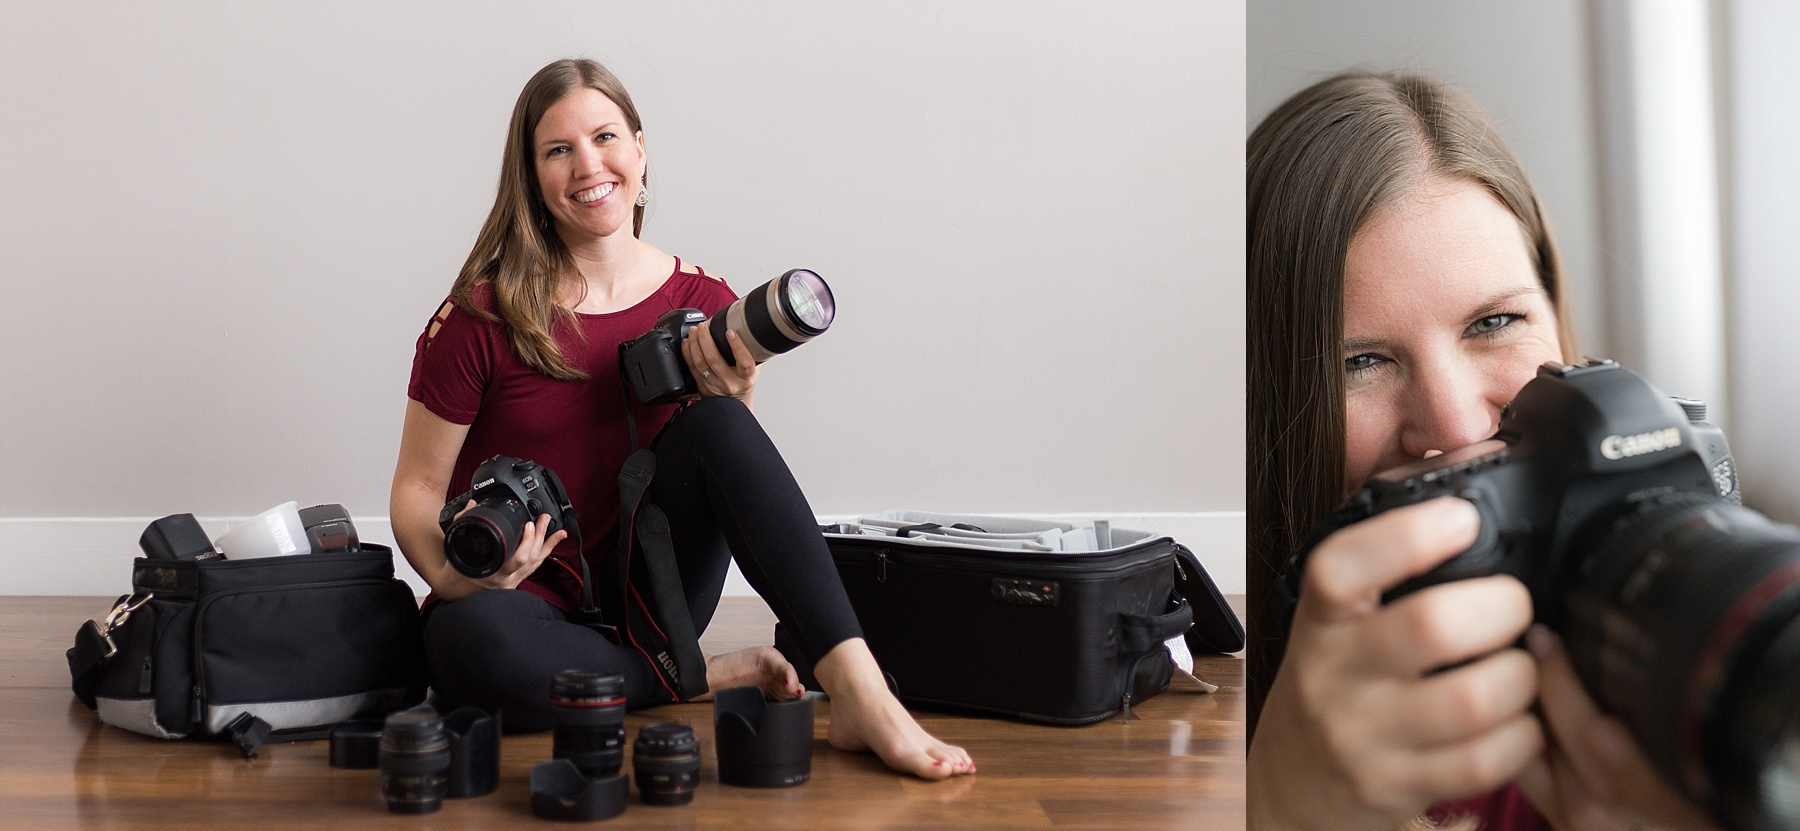 Indianapolis Family Photographer posed with camera equipment.